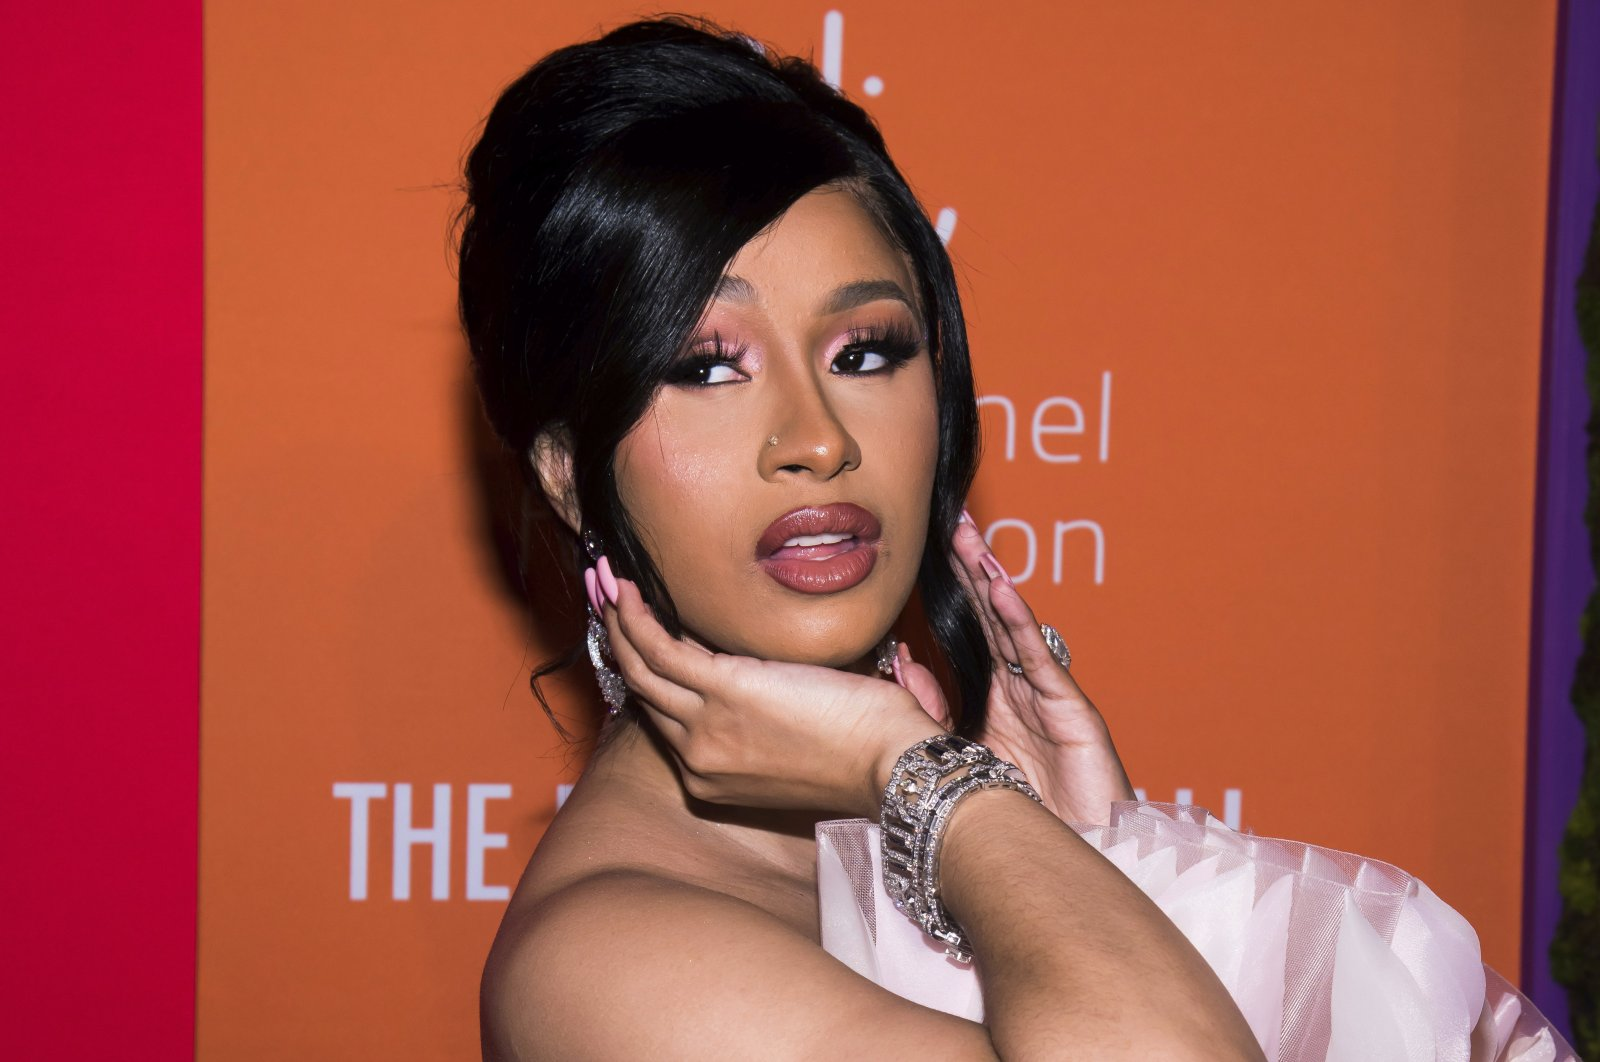 Cardi B attends the 5th annual Diamond Ball benefit gala at Cipriani Wall Street in New York, U.S., Sept. 12, 2019.  (AP Photo)